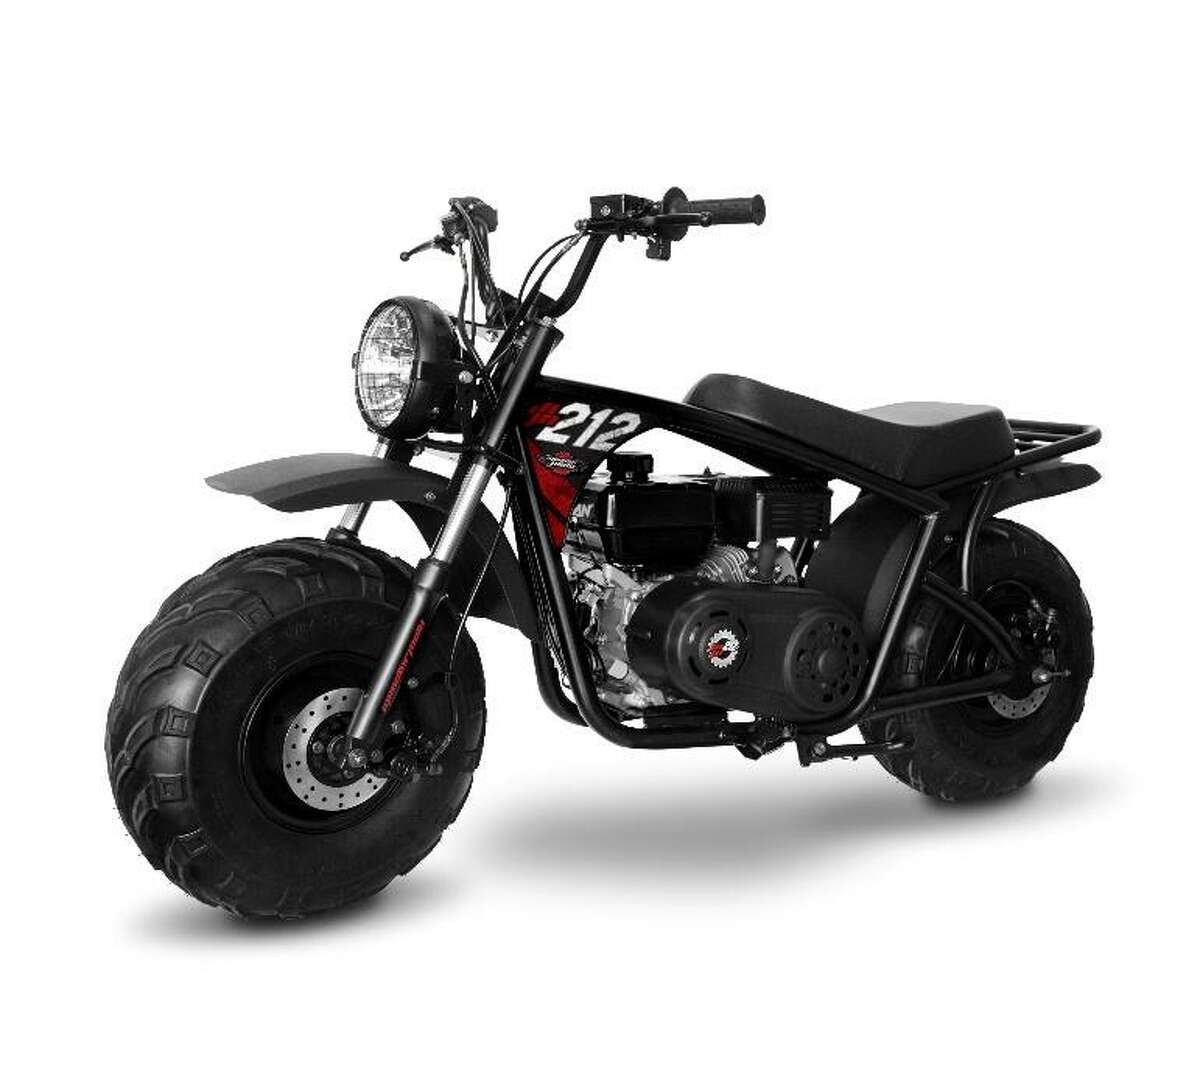 Monster Moto is recalling about 1,800 Monster Moto Classic 212cc mini bikes, as the fuel tank venting system can leak, posing a fire hazard. Photo courtesy of the U.S. Consumer Product Safety Commission.